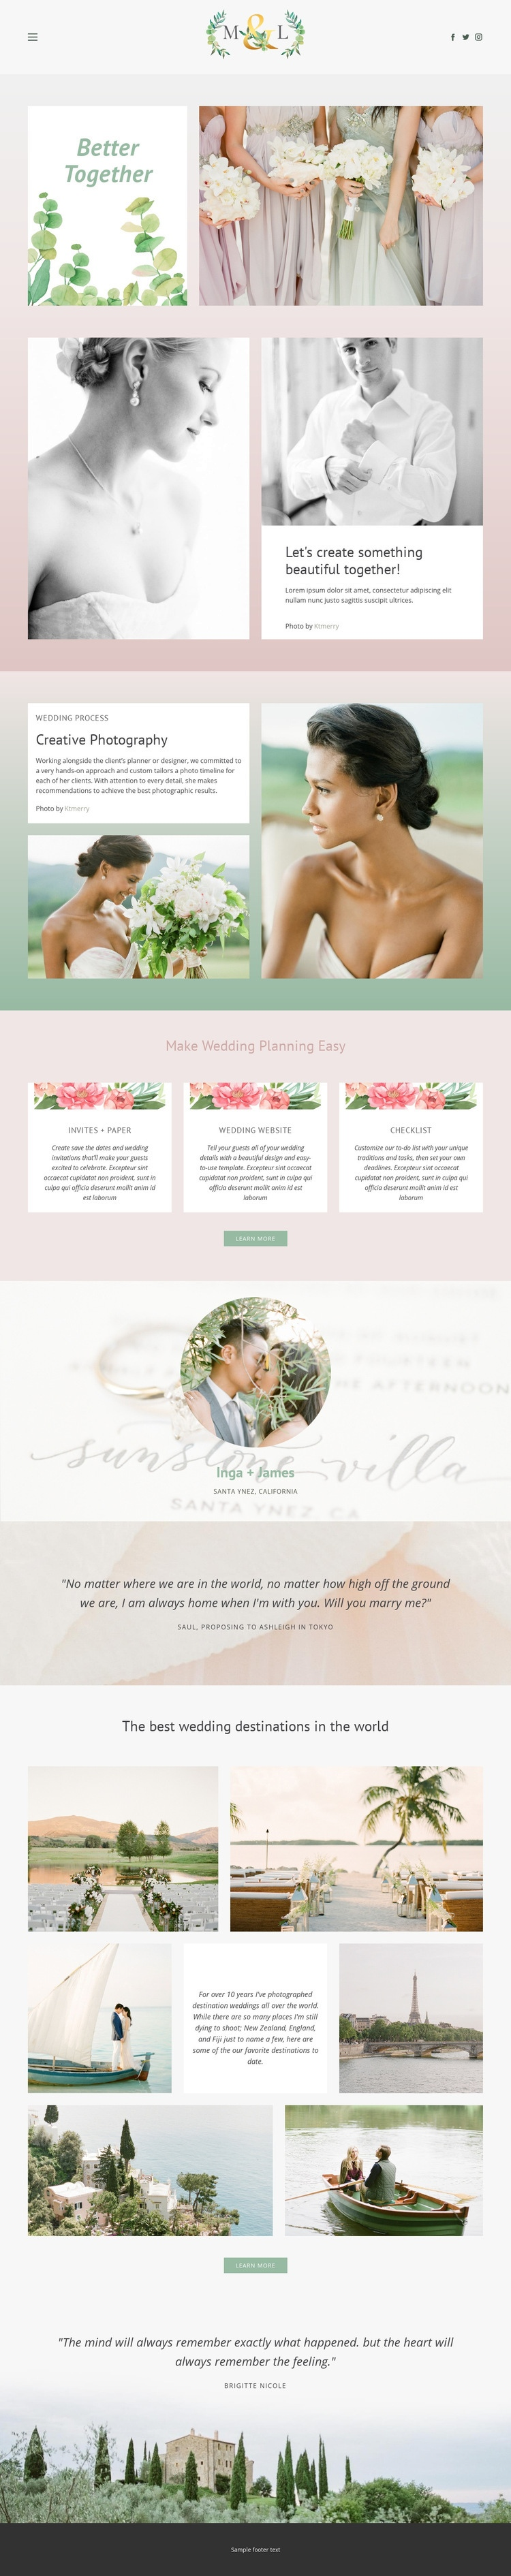 Best photos for wedding Html Code Example